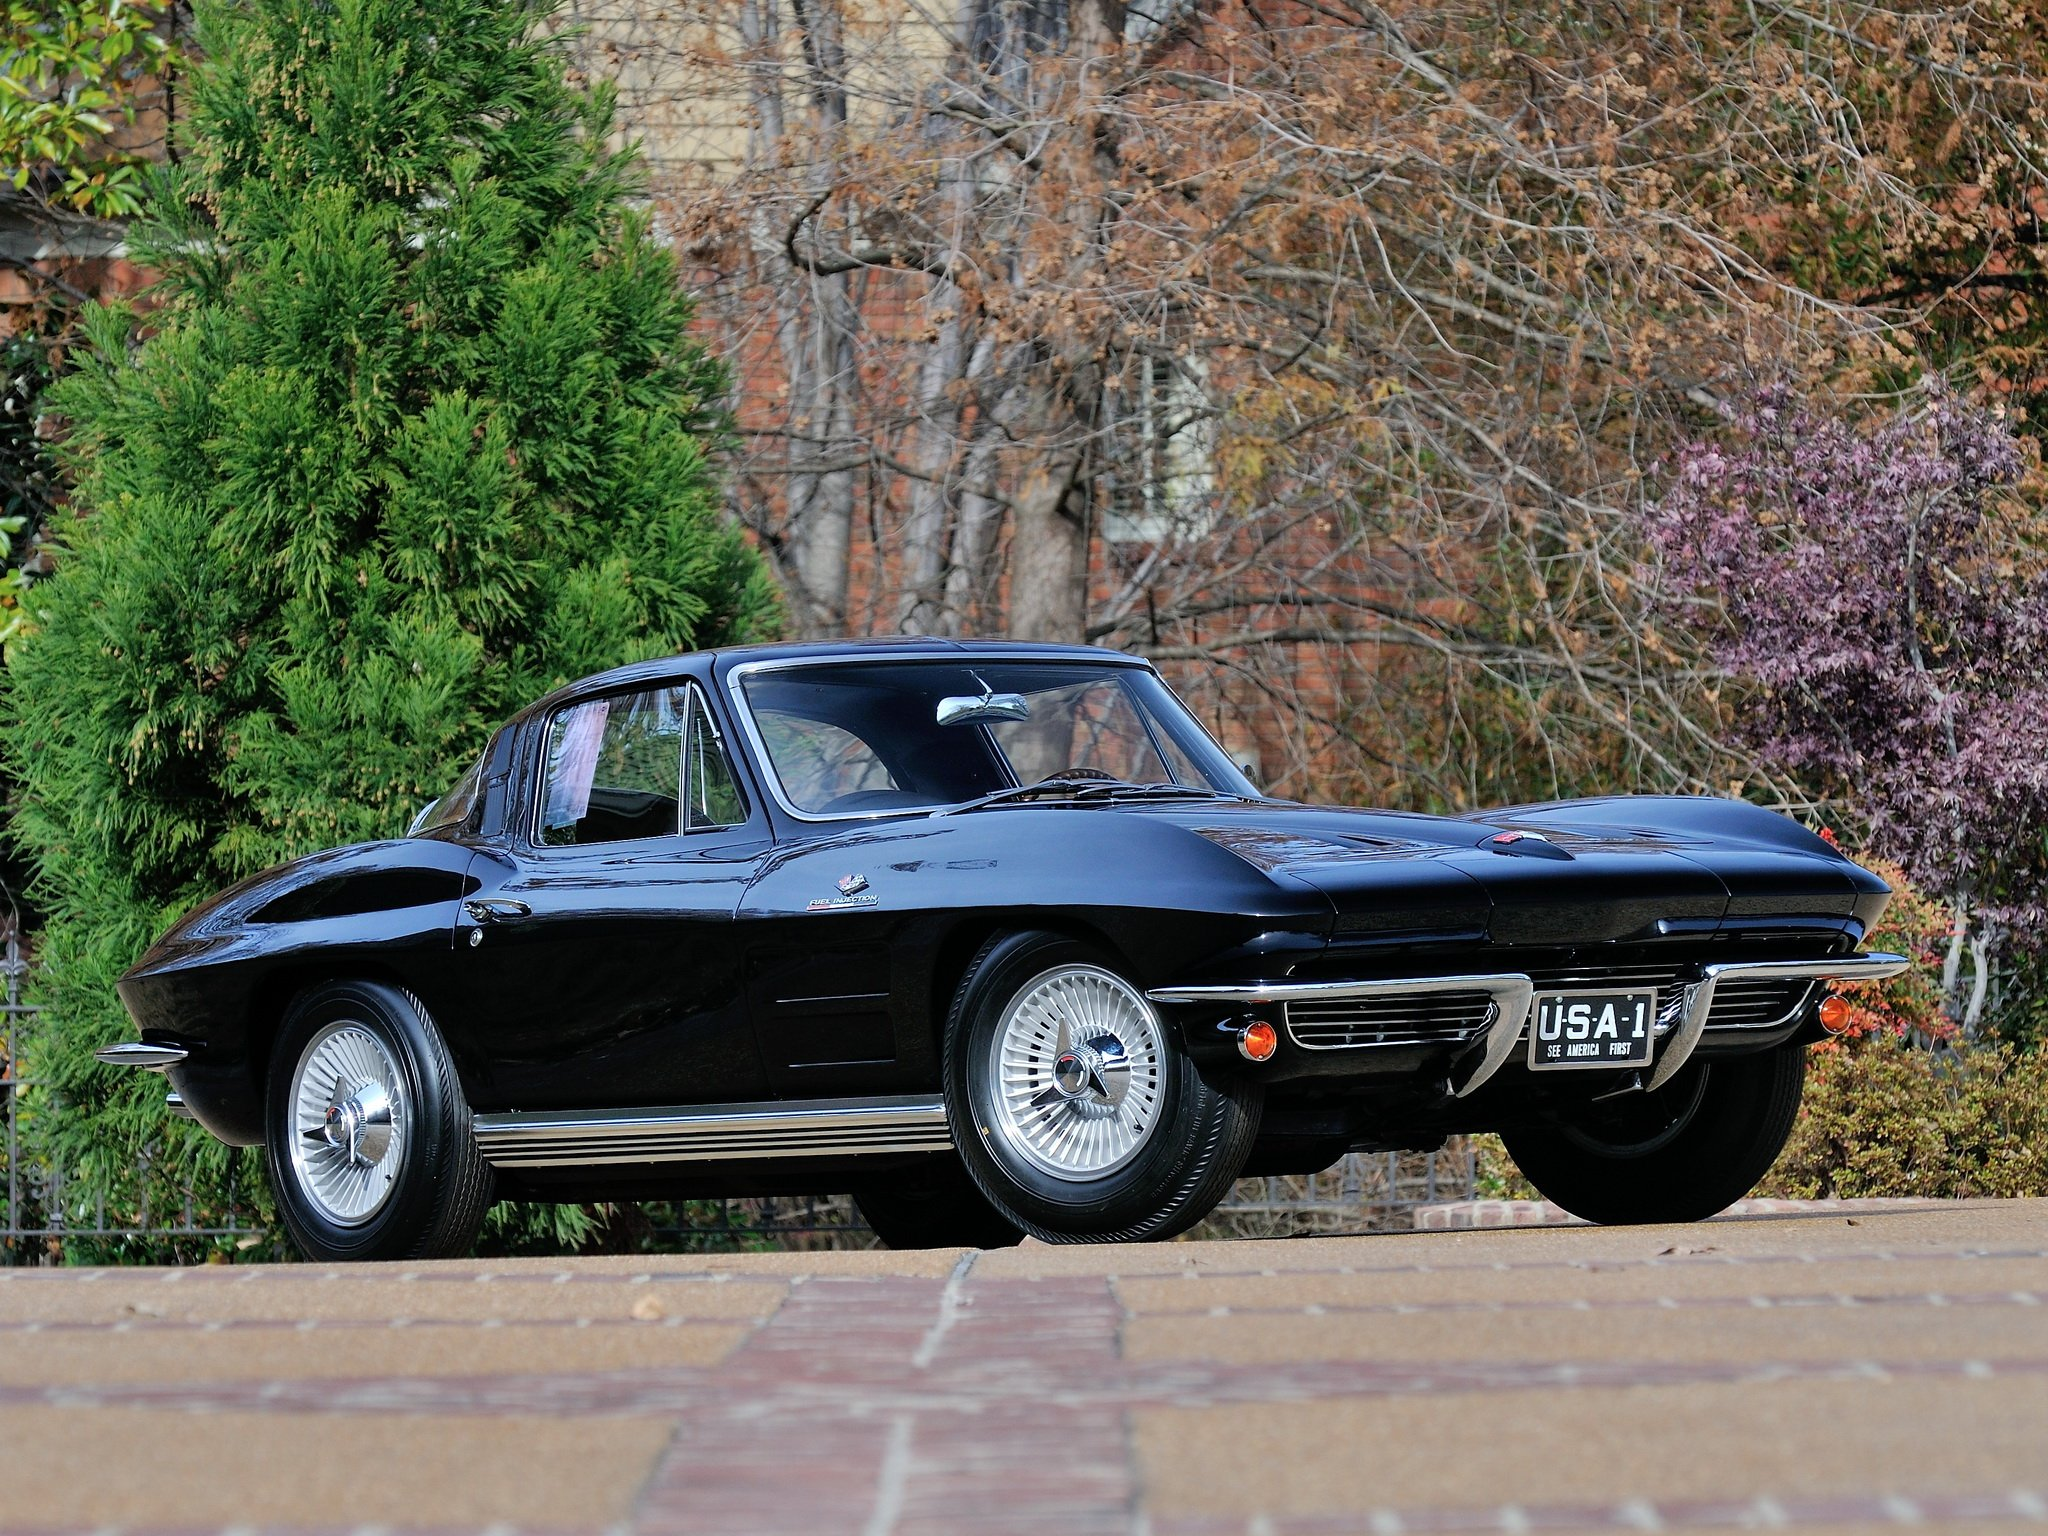 Black 1964 L84 Stingray Corvette on road with trees in background